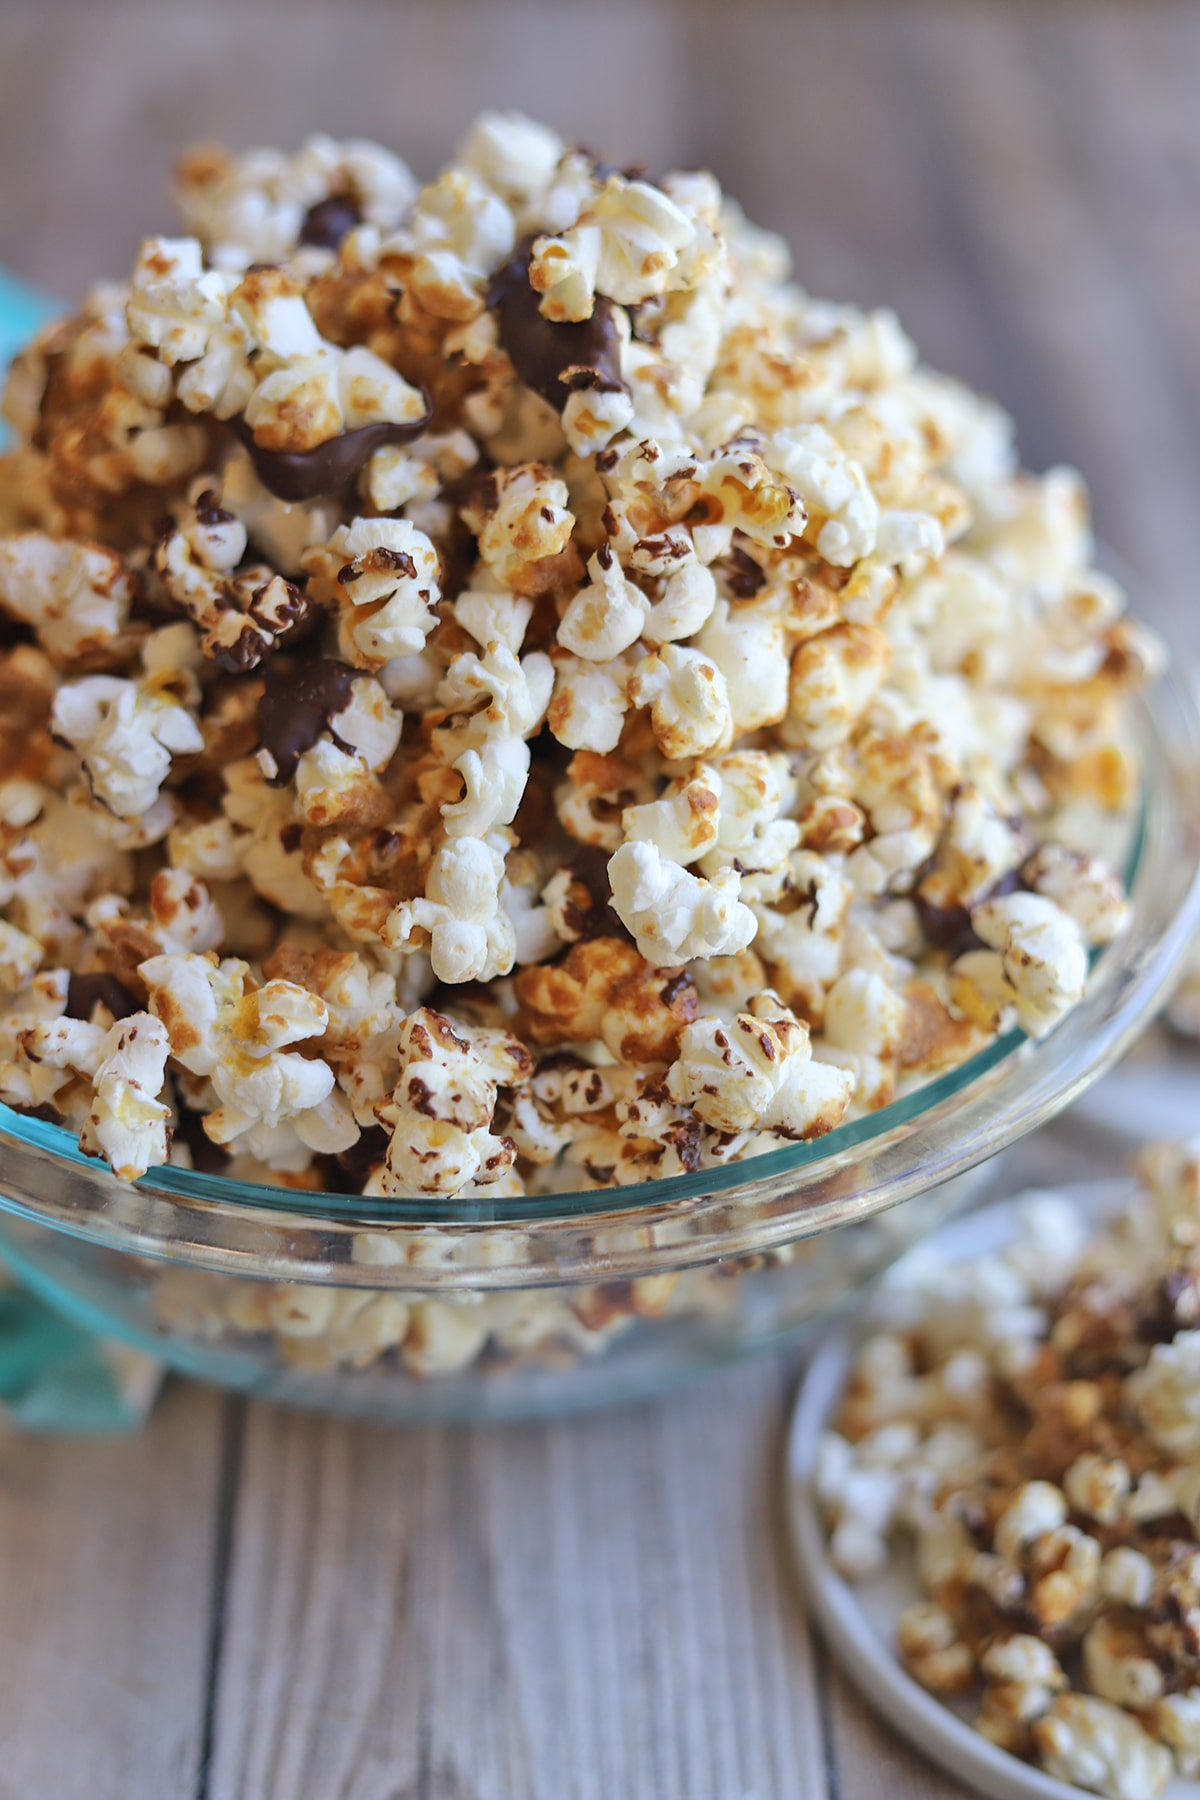 Peanut butter chocolate popcorn in a bowl.